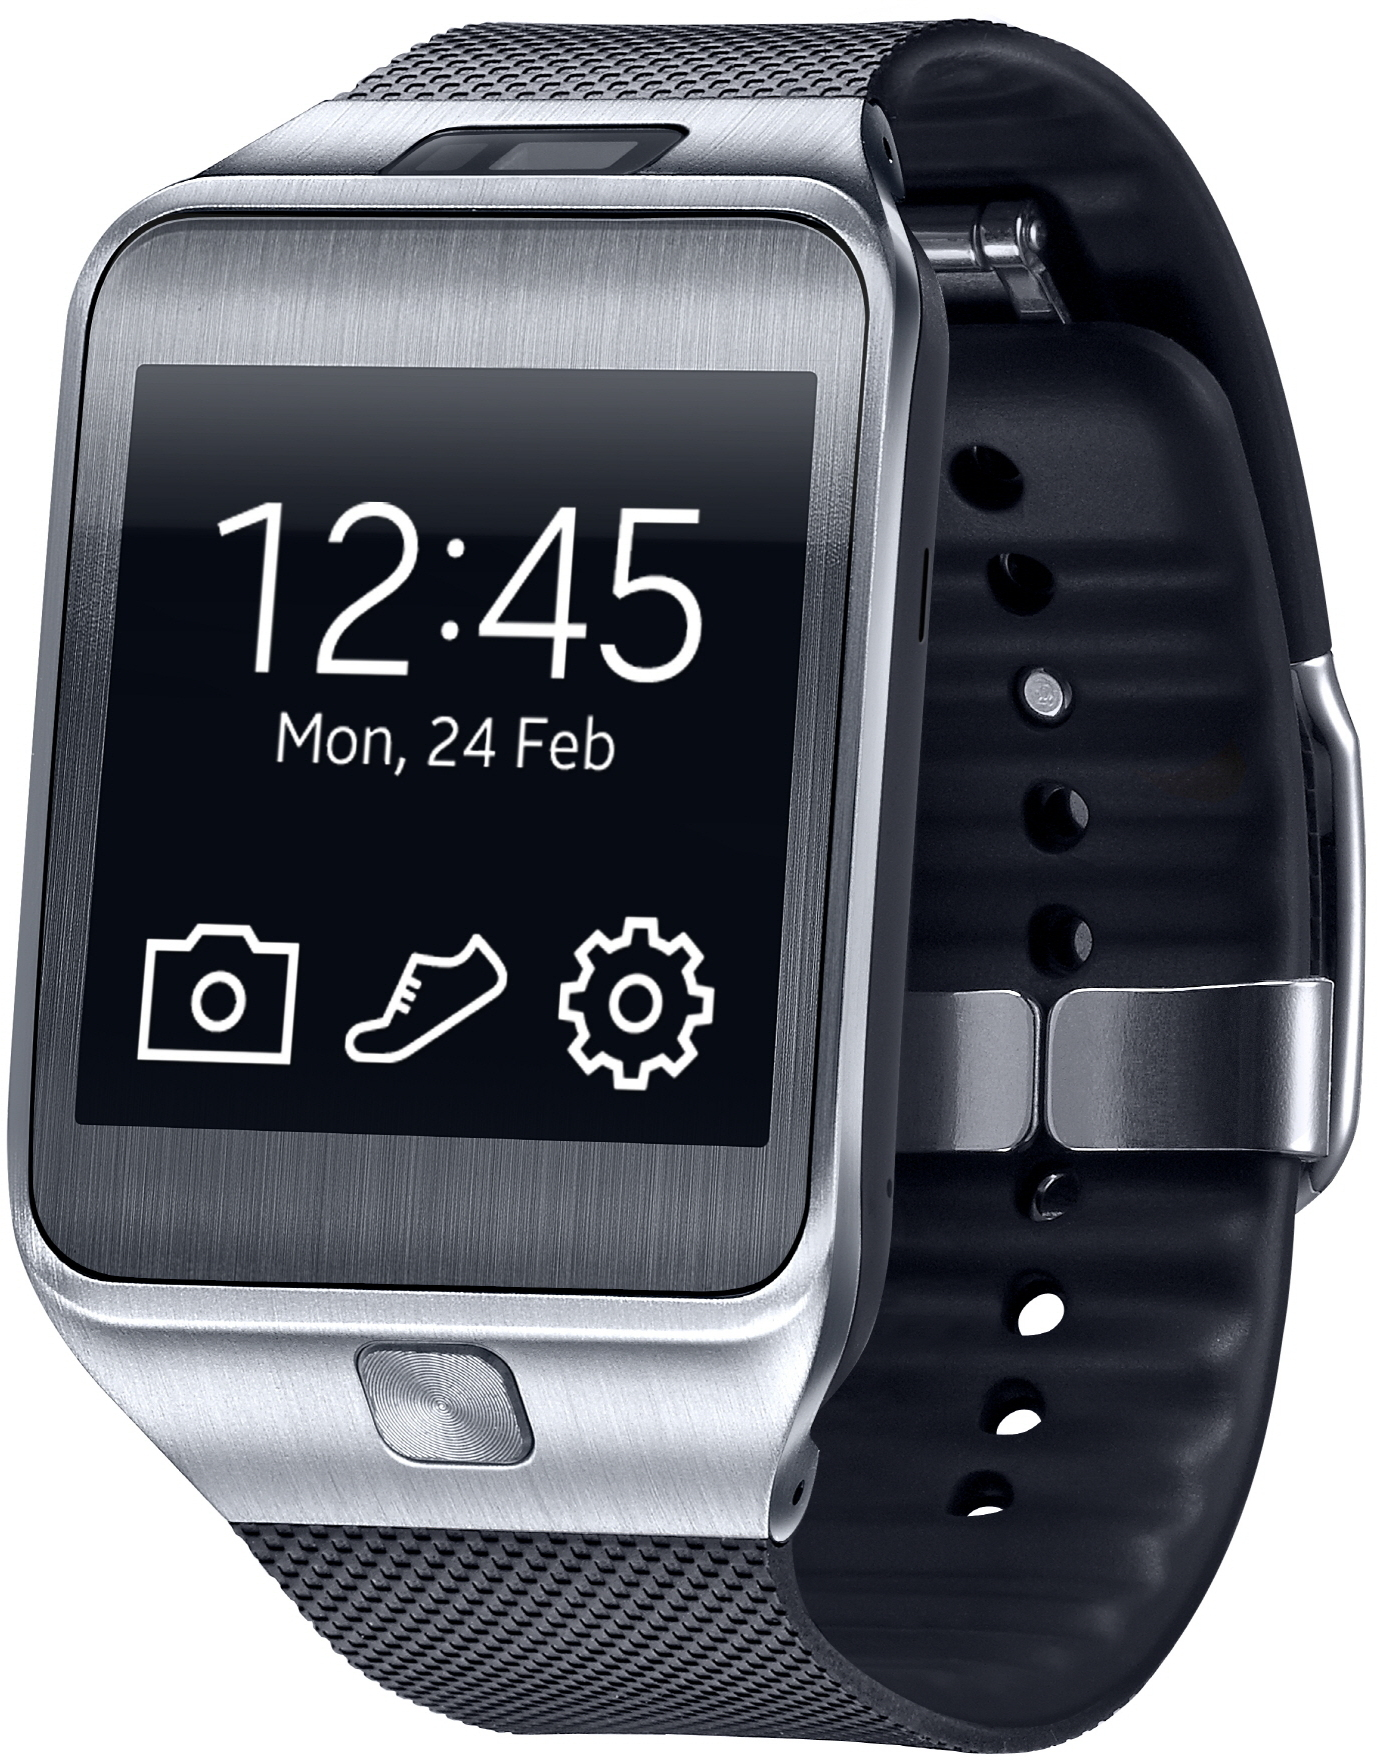 samsung gear 2 la montre connect e haut de gamme test. Black Bedroom Furniture Sets. Home Design Ideas